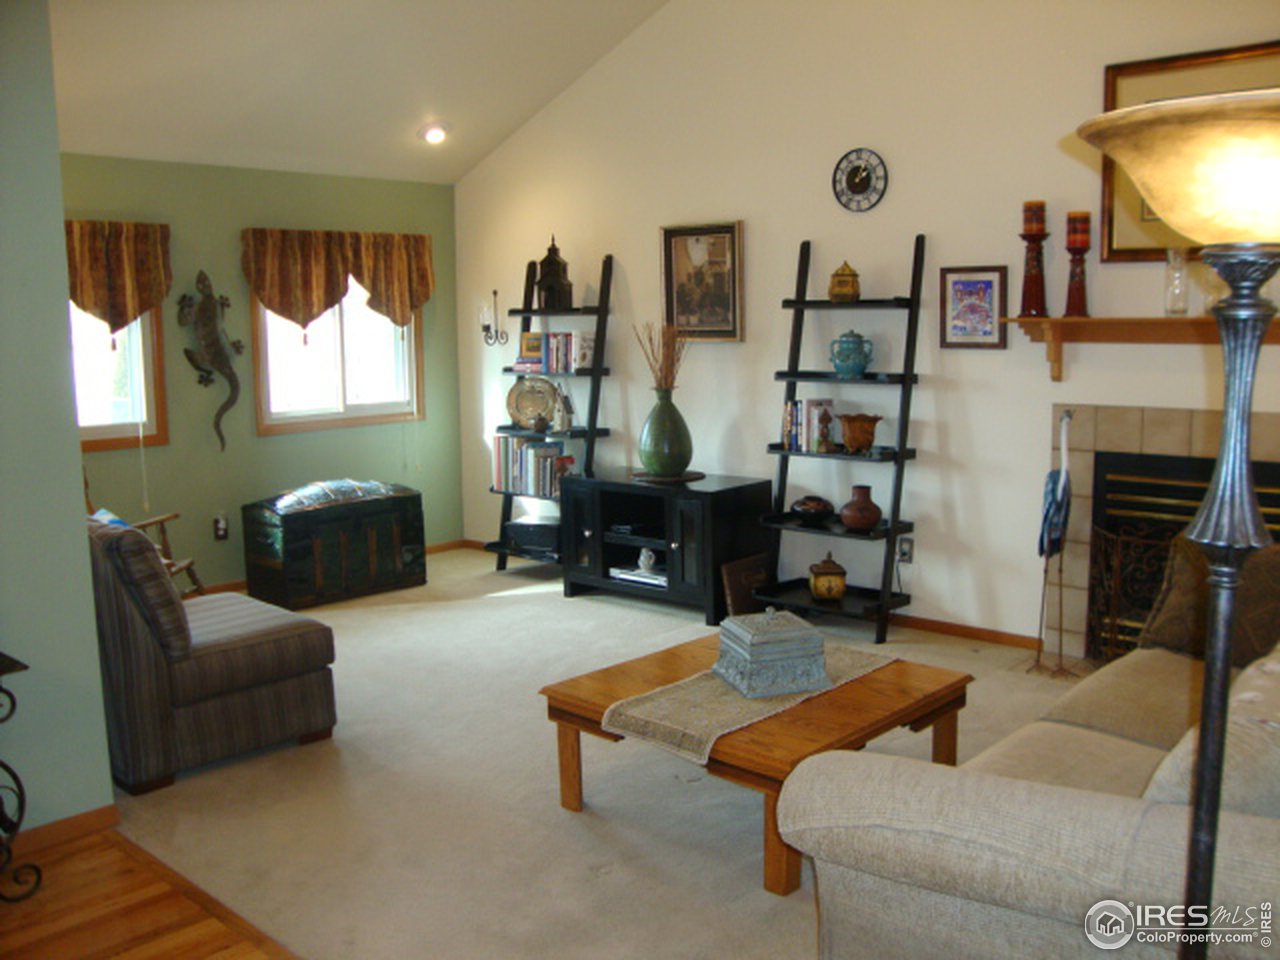 Dining area and family room with access to patio